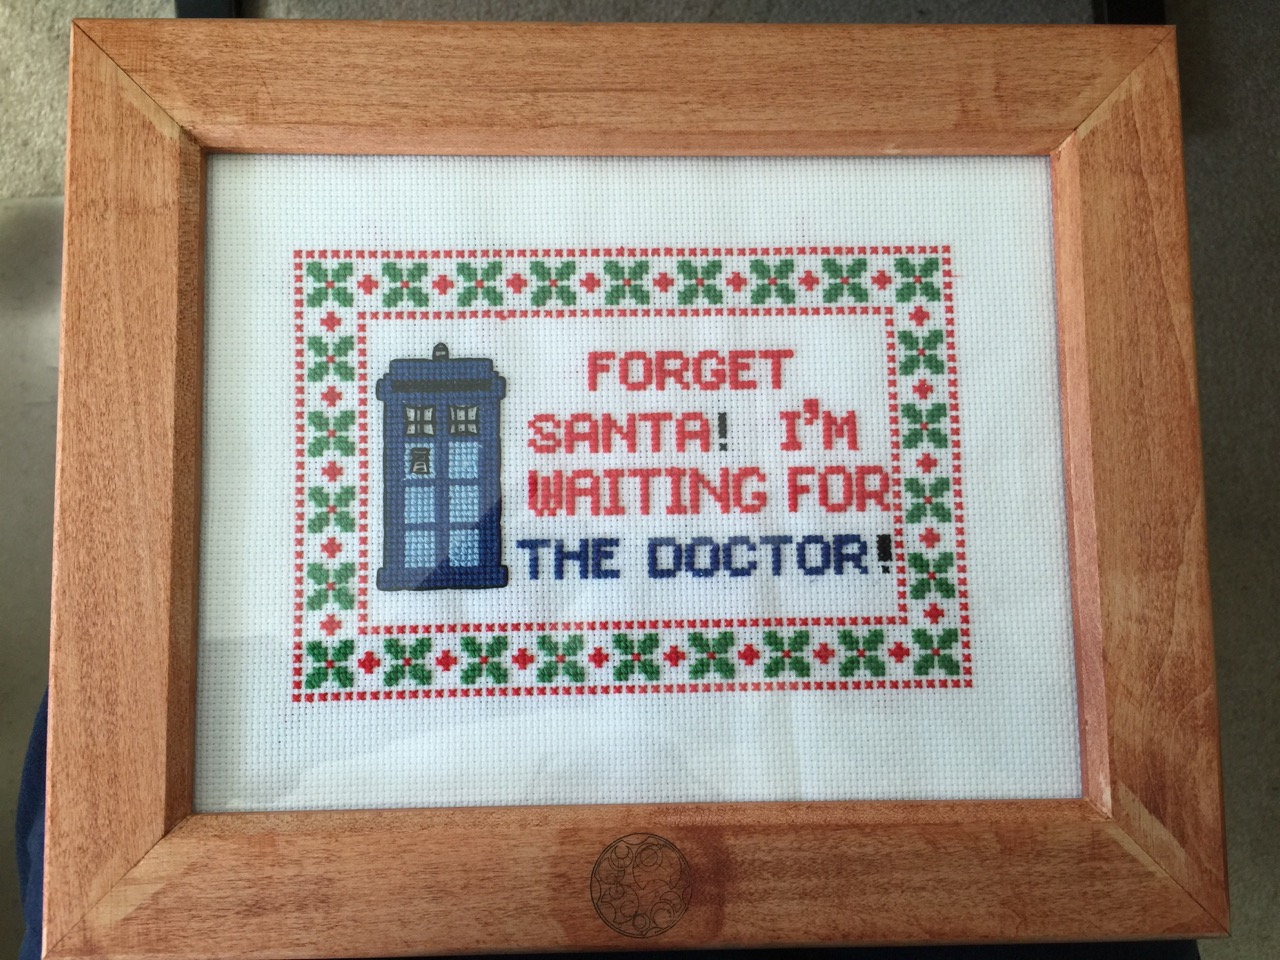 Christmas themed Doctor Who cross-stitch framed artwork